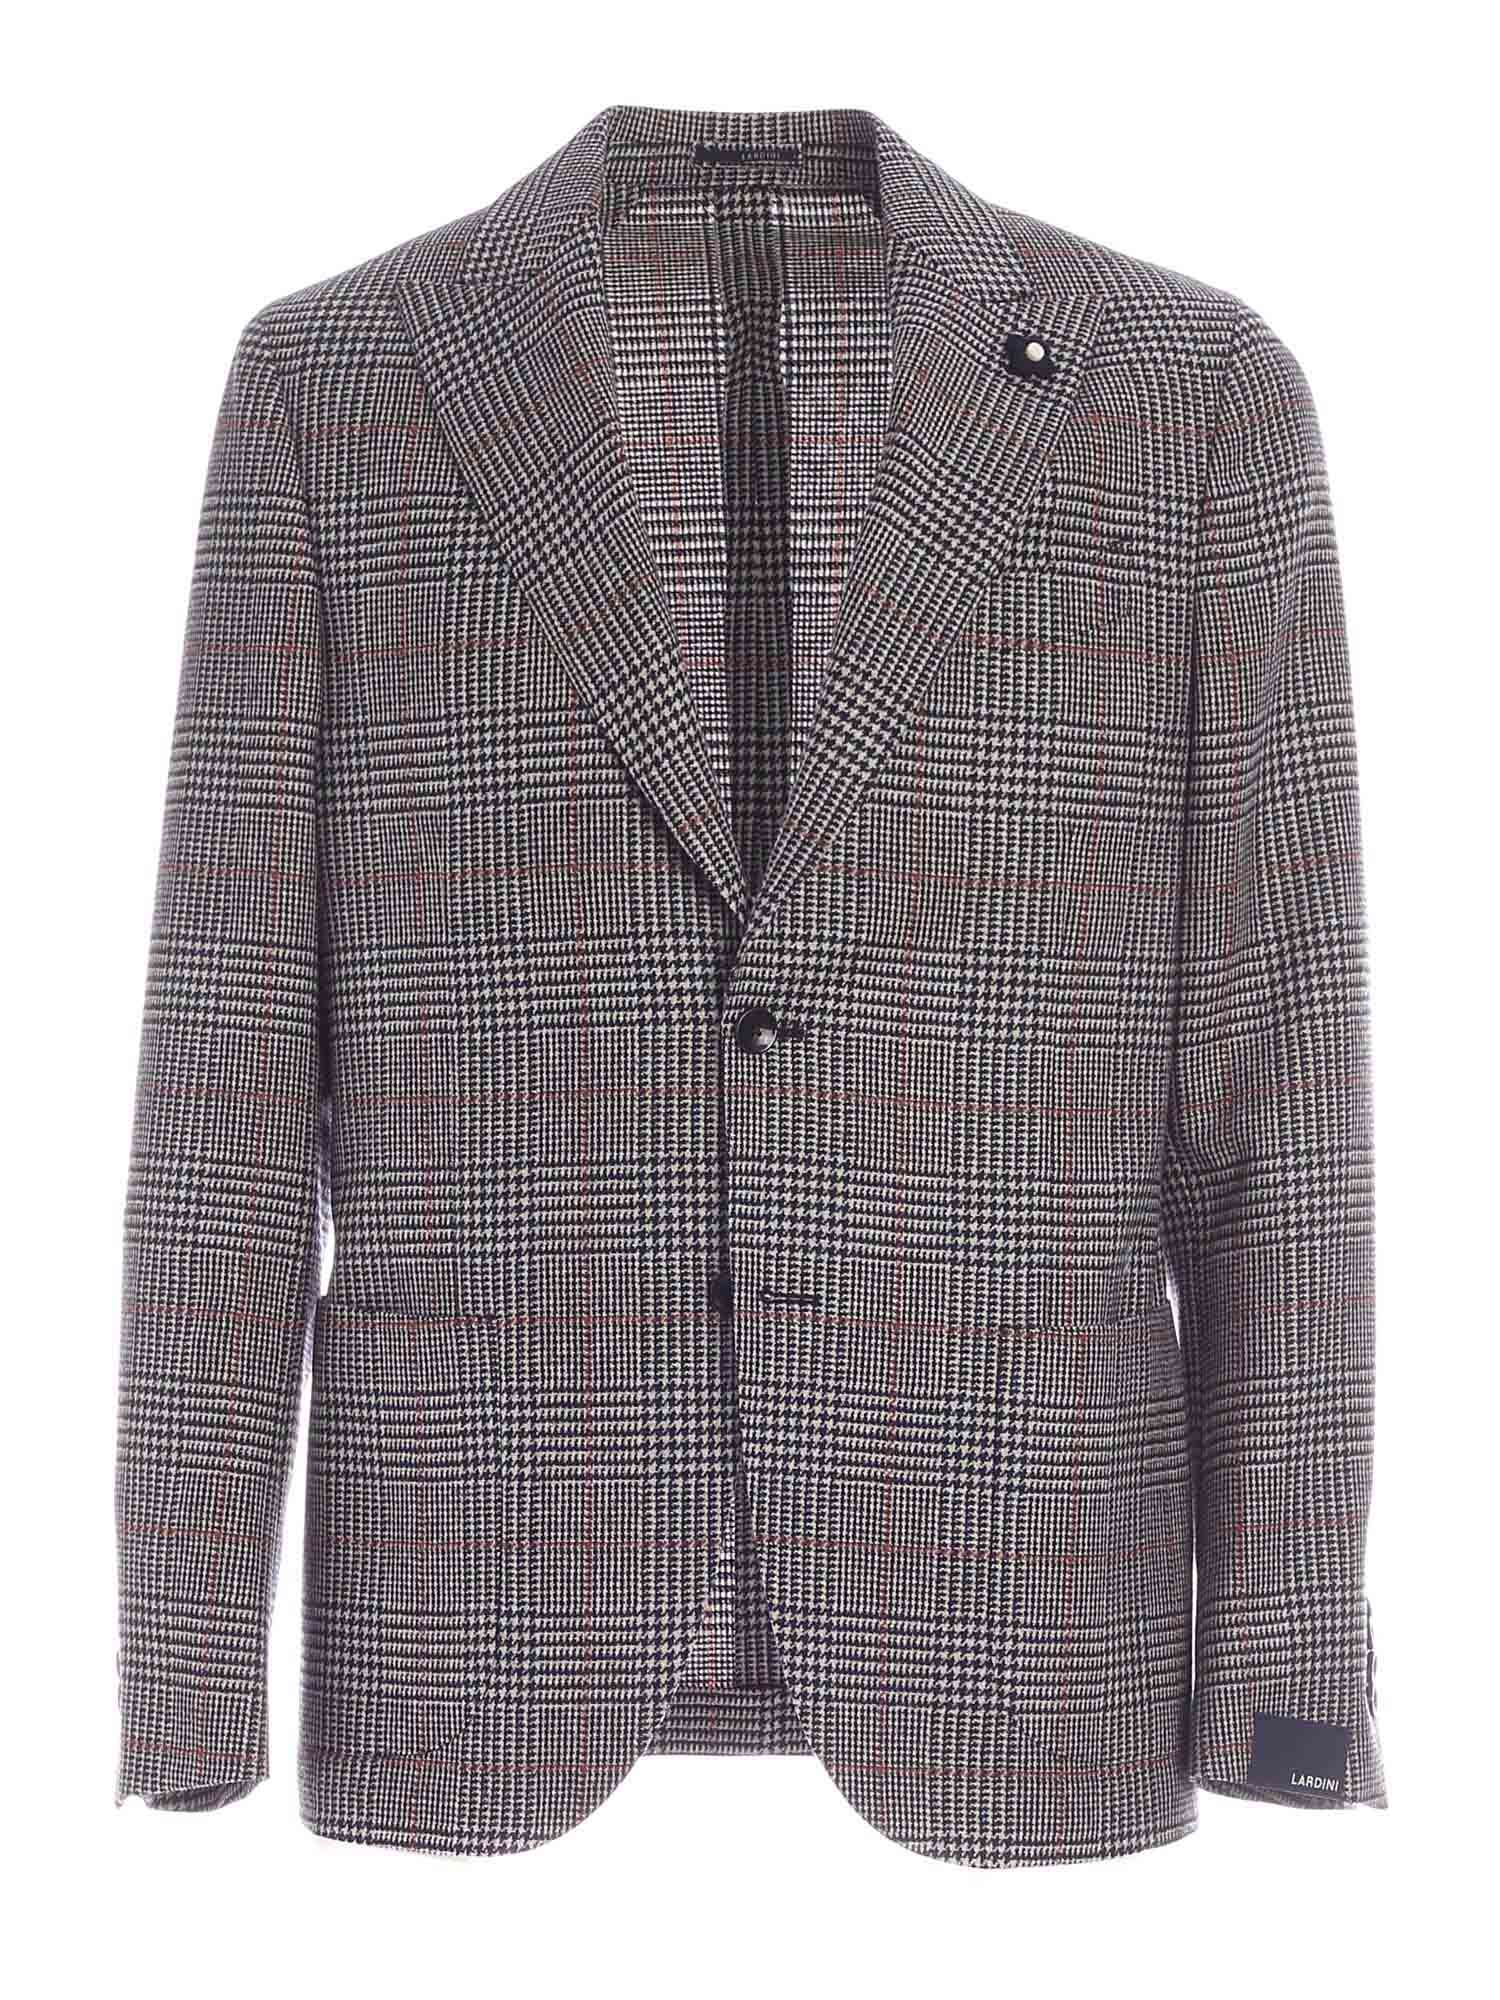 Lardini PRINCE OF WALES CHECK BLUE AND BEIGE JACKET